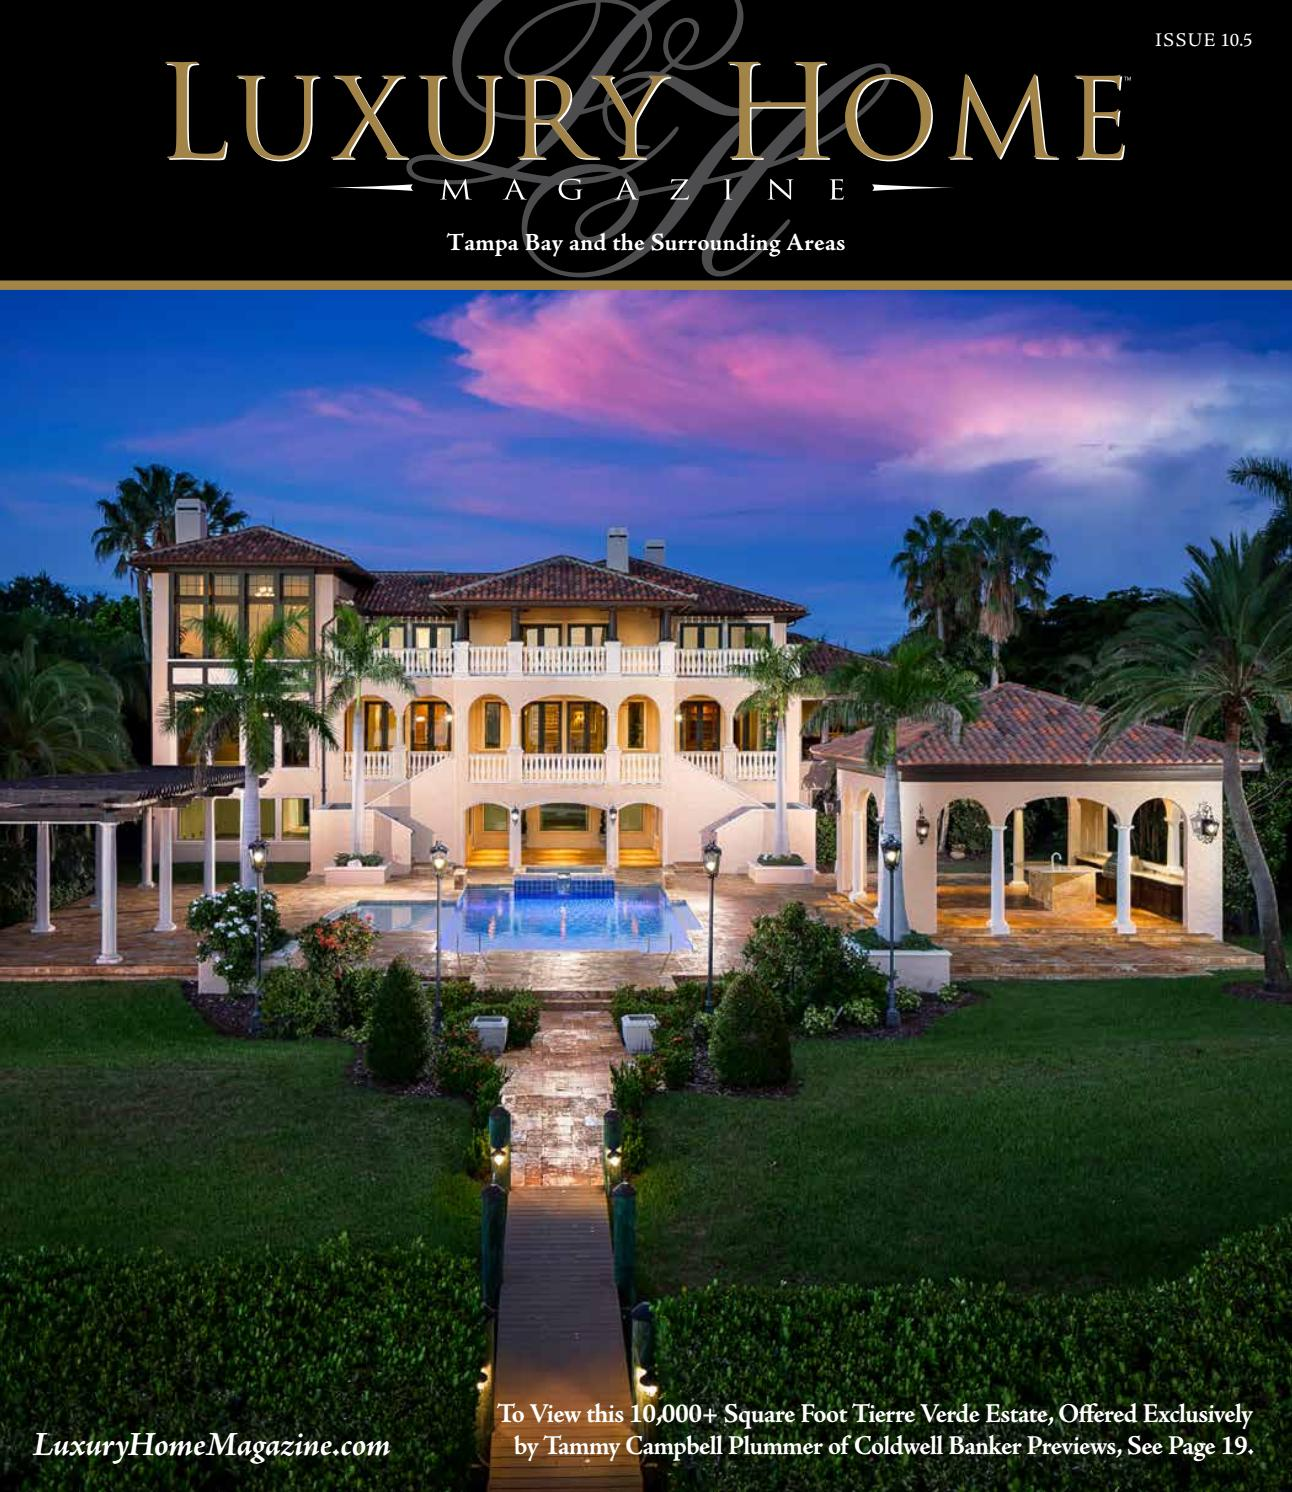 Mansion Luxury Pools With Waterfalls: Luxury Home Magazine Tampa Bay Issue 10.5 By Luxury Home